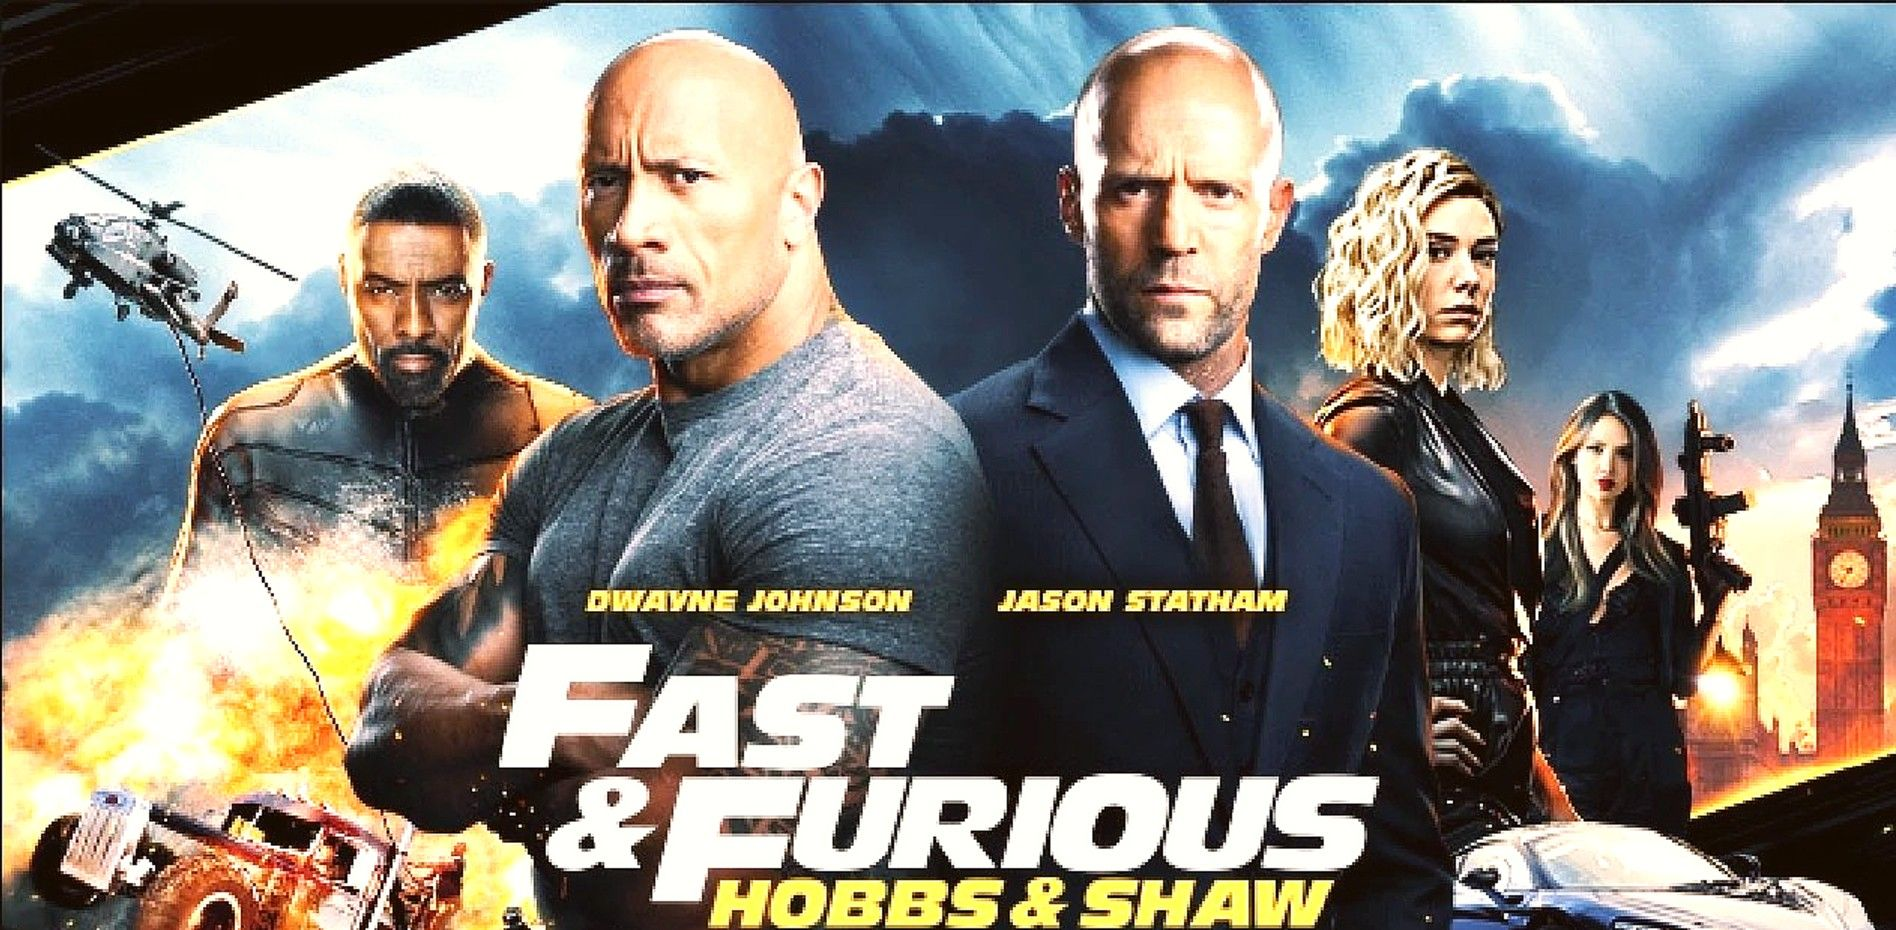 Movie Review Fast Furious Hobbs Shaw Dwayne Johnson Jason Statham Take You Fast And Furious Jason Statham Dwayne Johnson